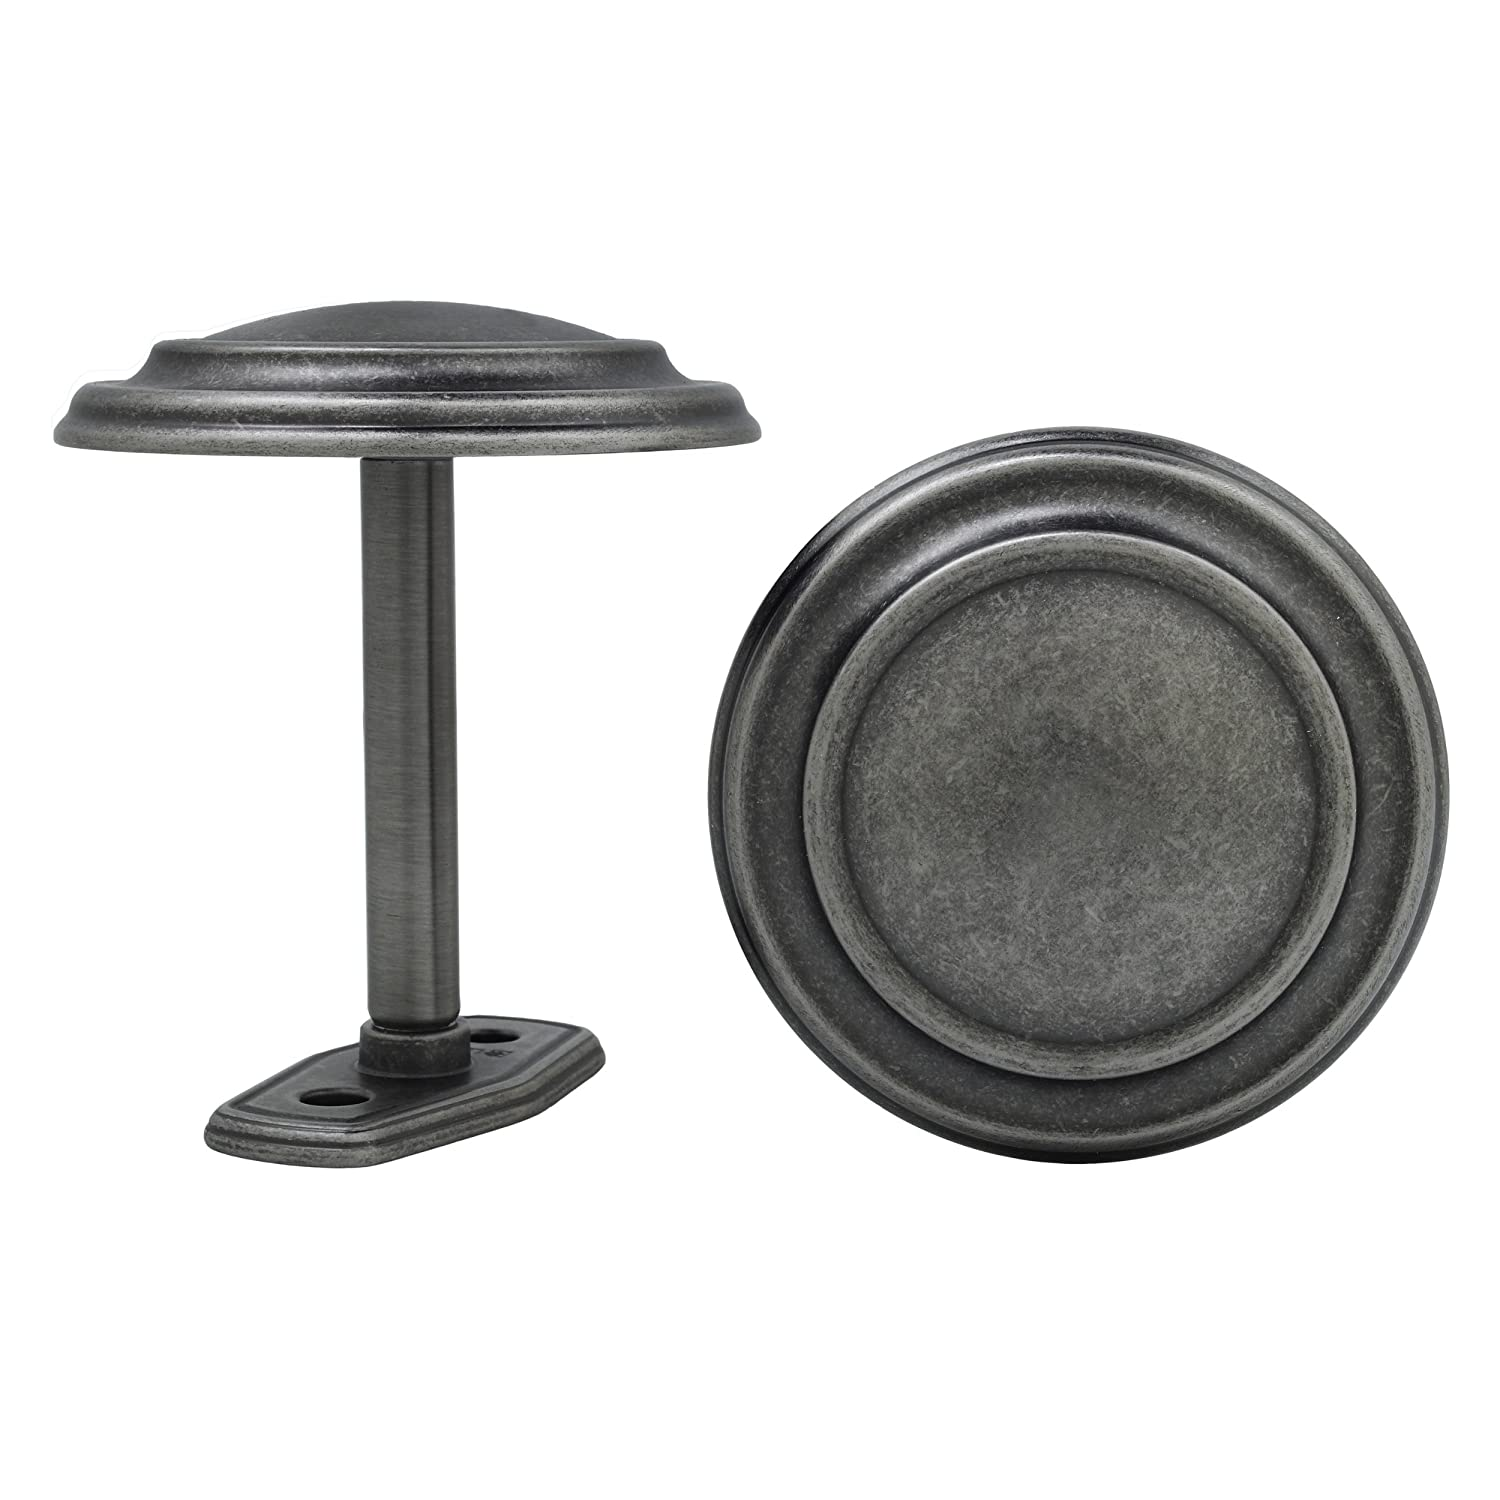 Kenney 54566011 Medallion Drapery Holdbacks, Antique Pewter, 2-Pack Kenney Manufacturing Company 54566.011